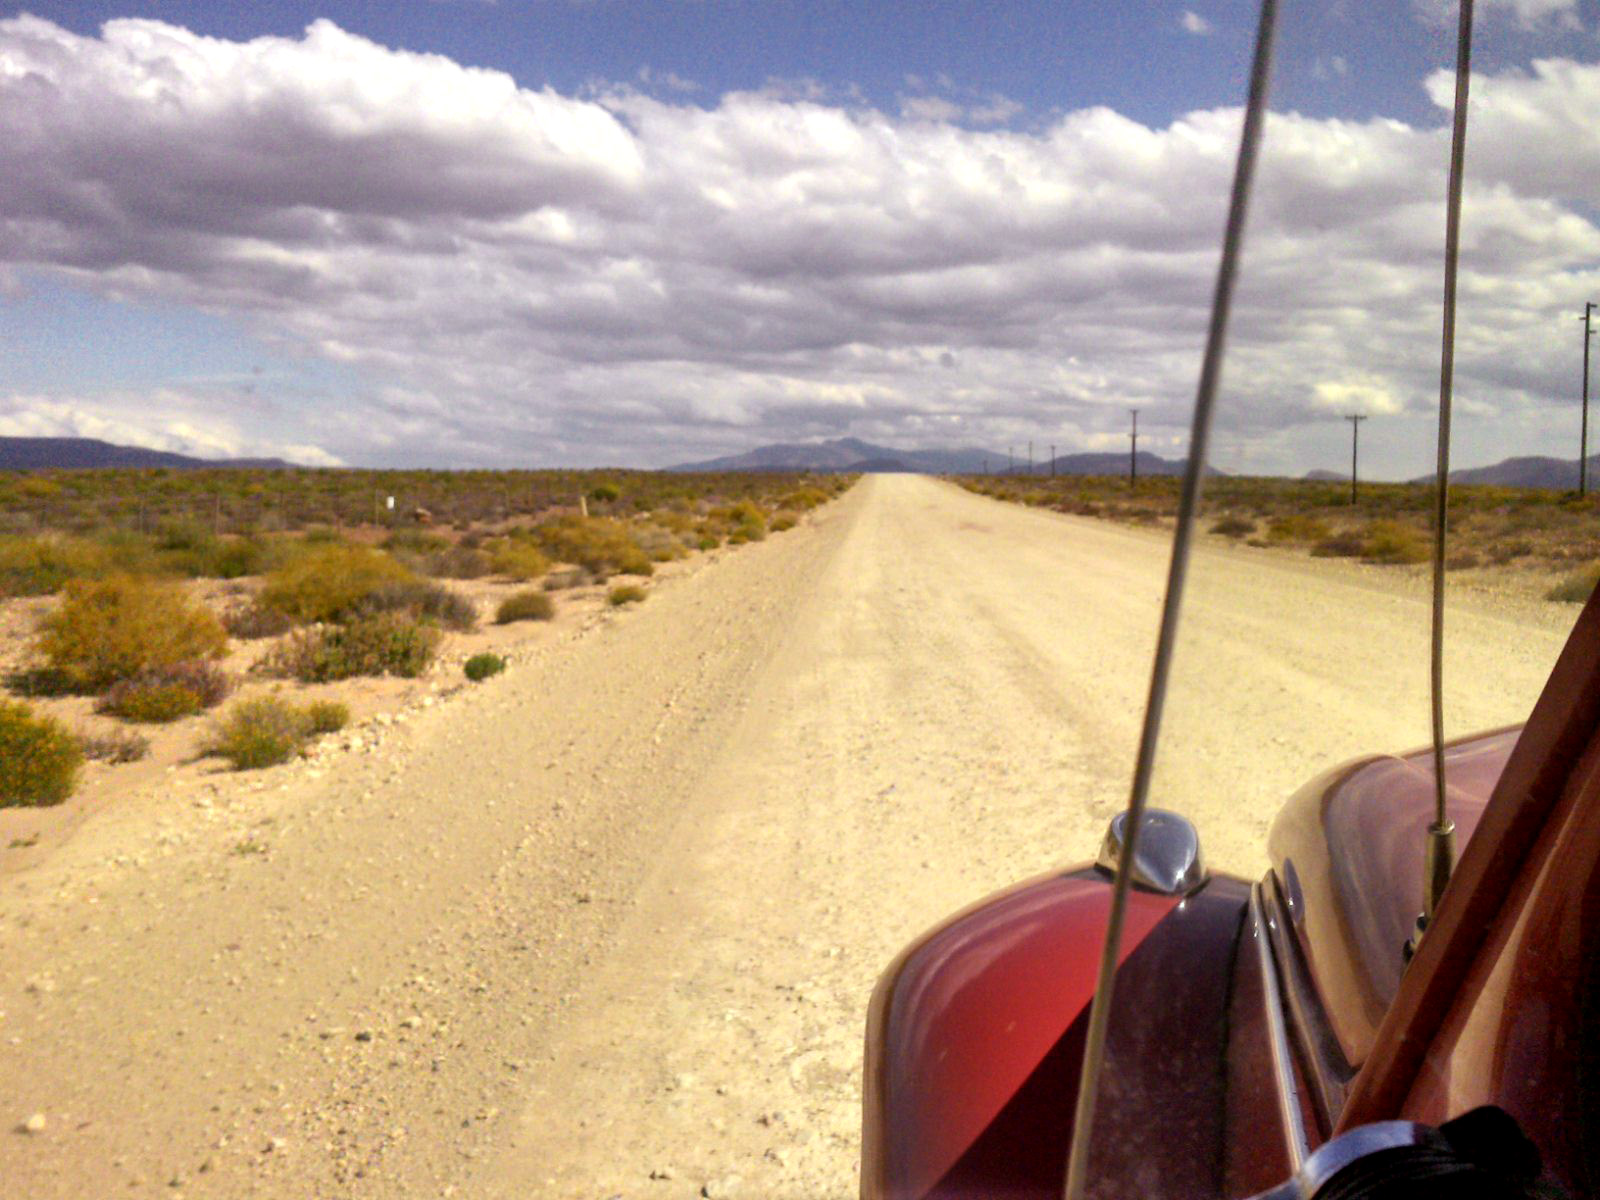 Oldtimer driving on a desert road